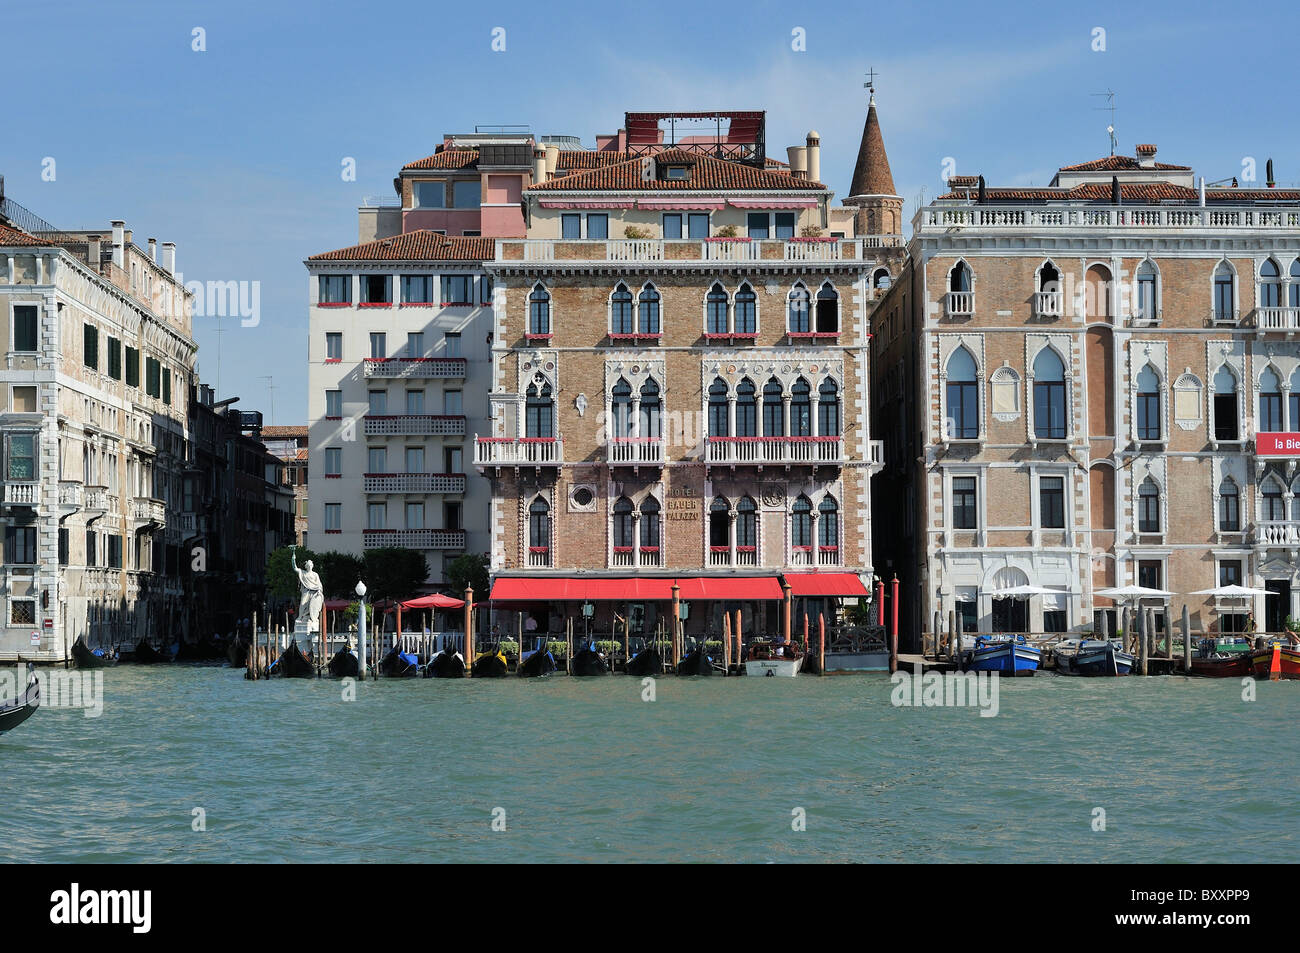 Venice Italy Hotel Bauer Grunwald Palazzo View From The Grand